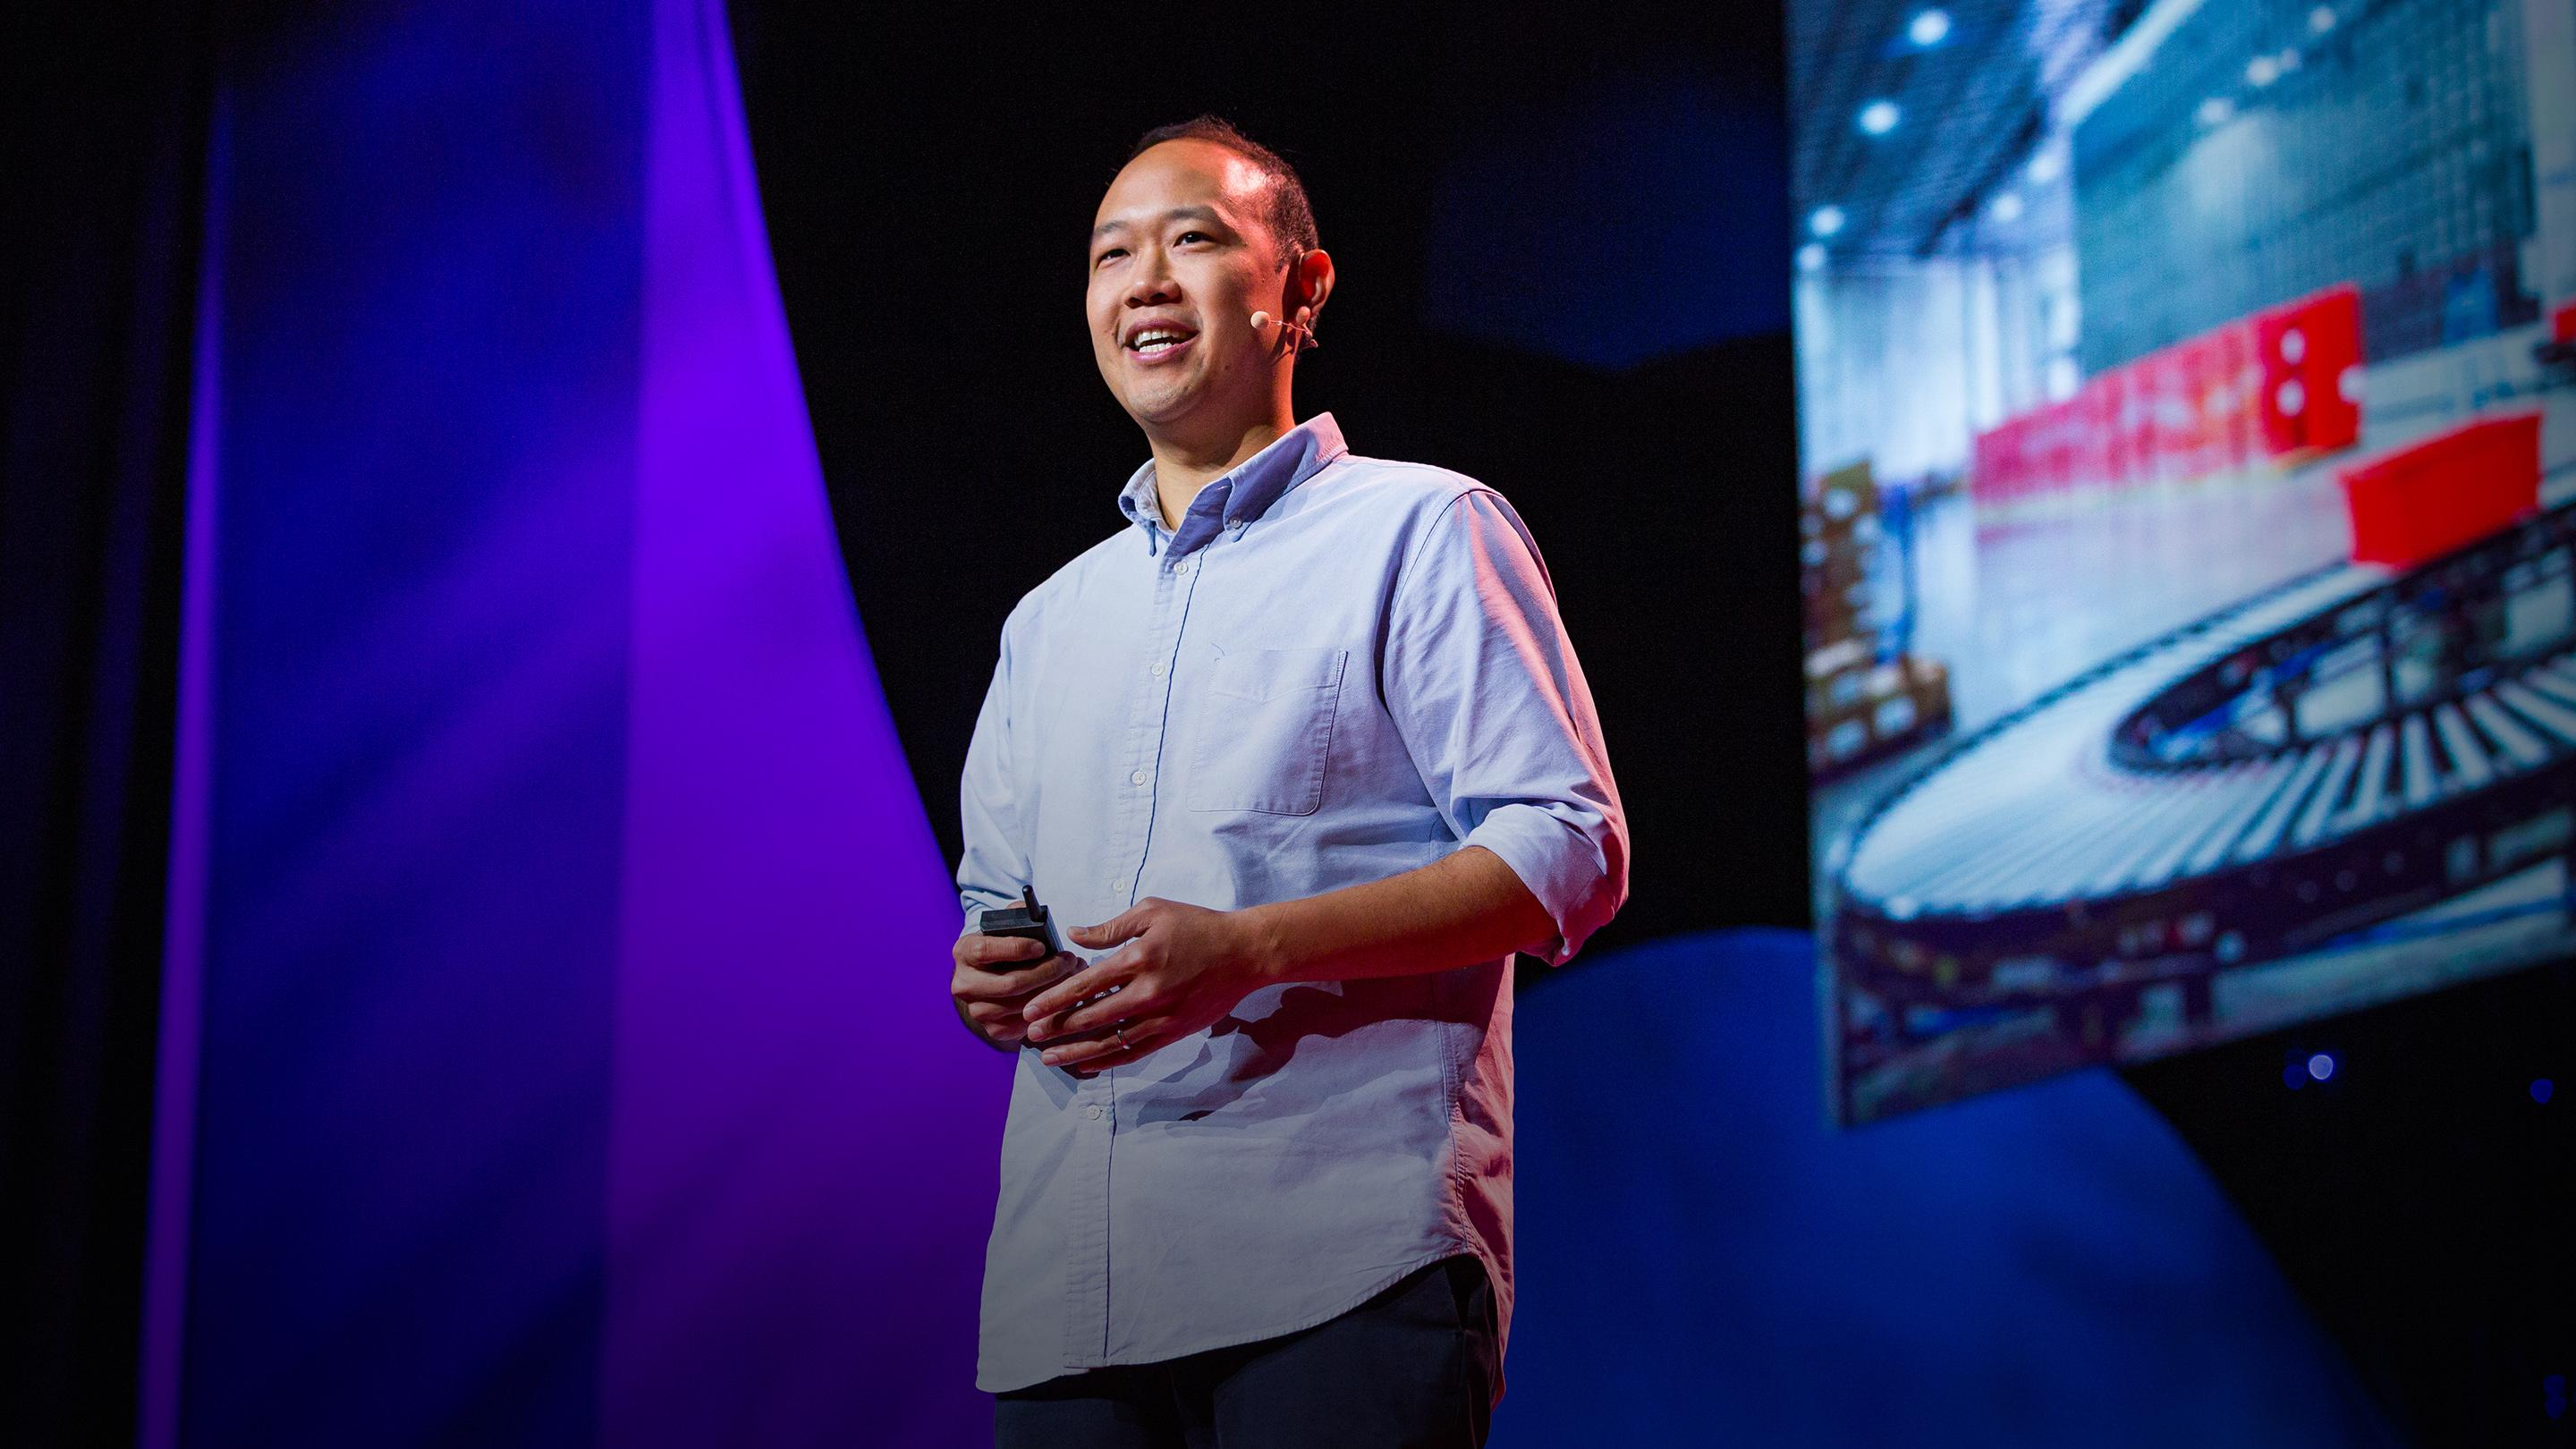 Confessions of a recovering micromanager | Chieh Huang